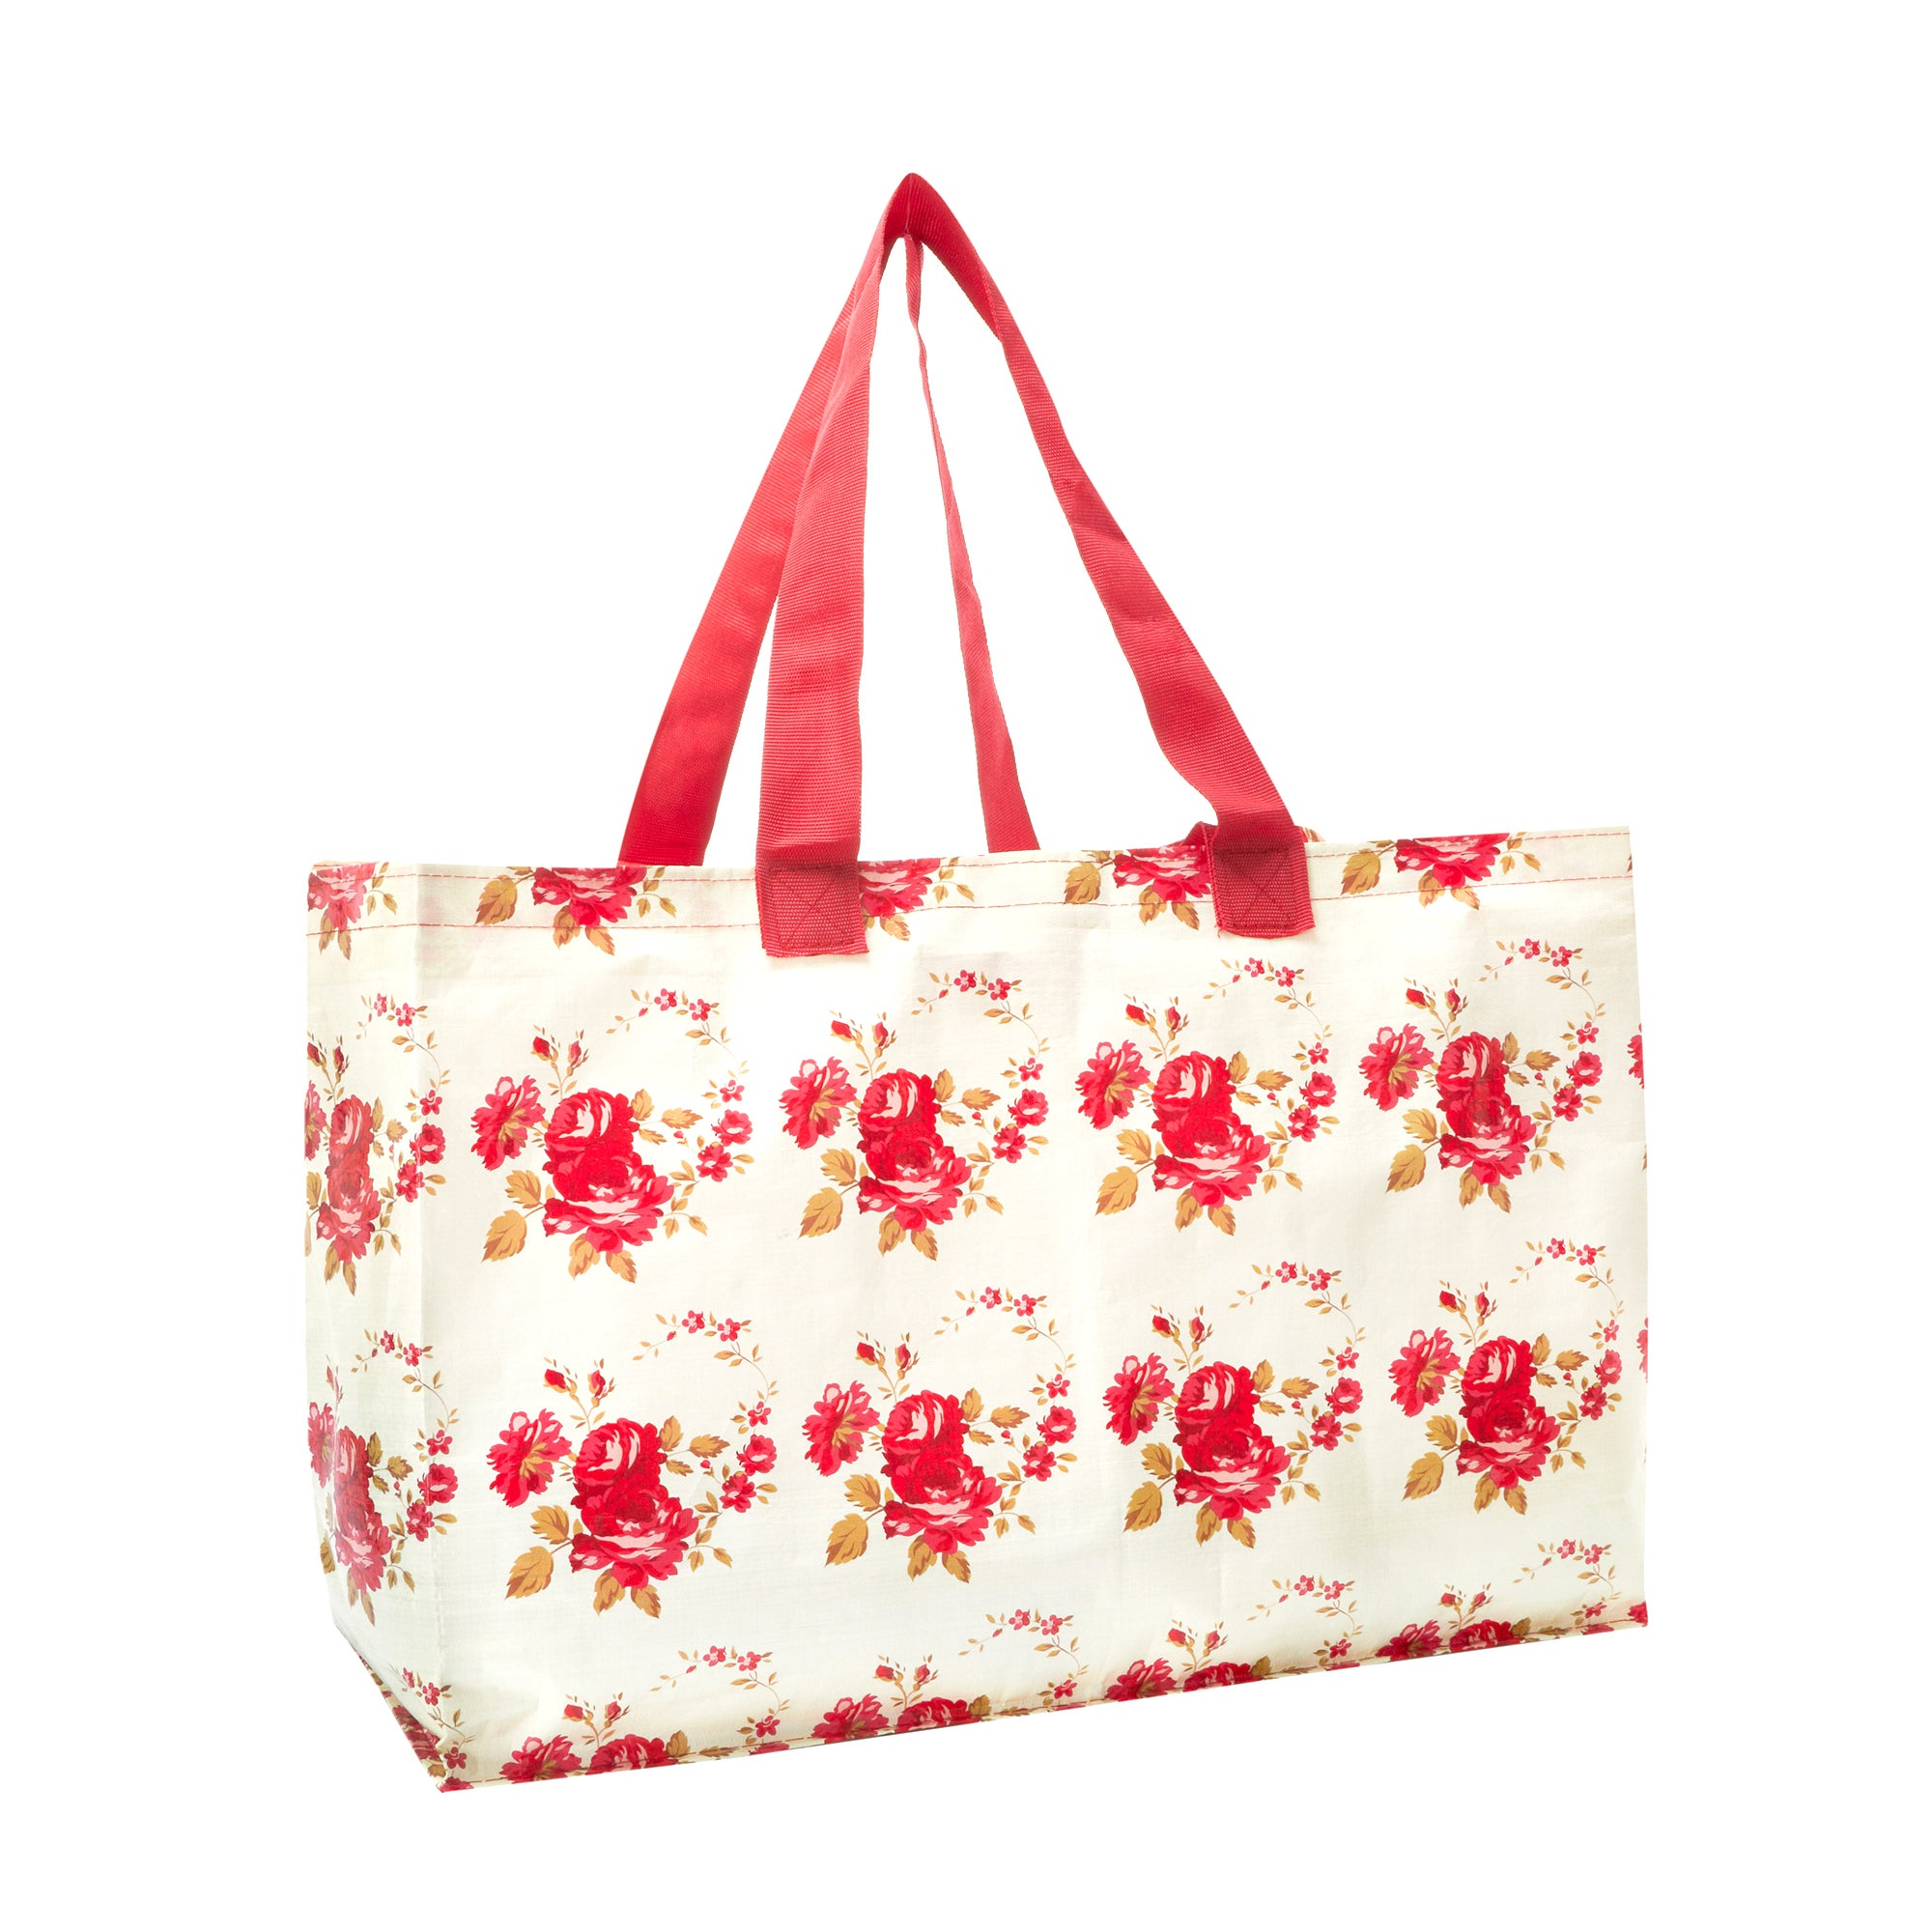 Roses Laundry Bag